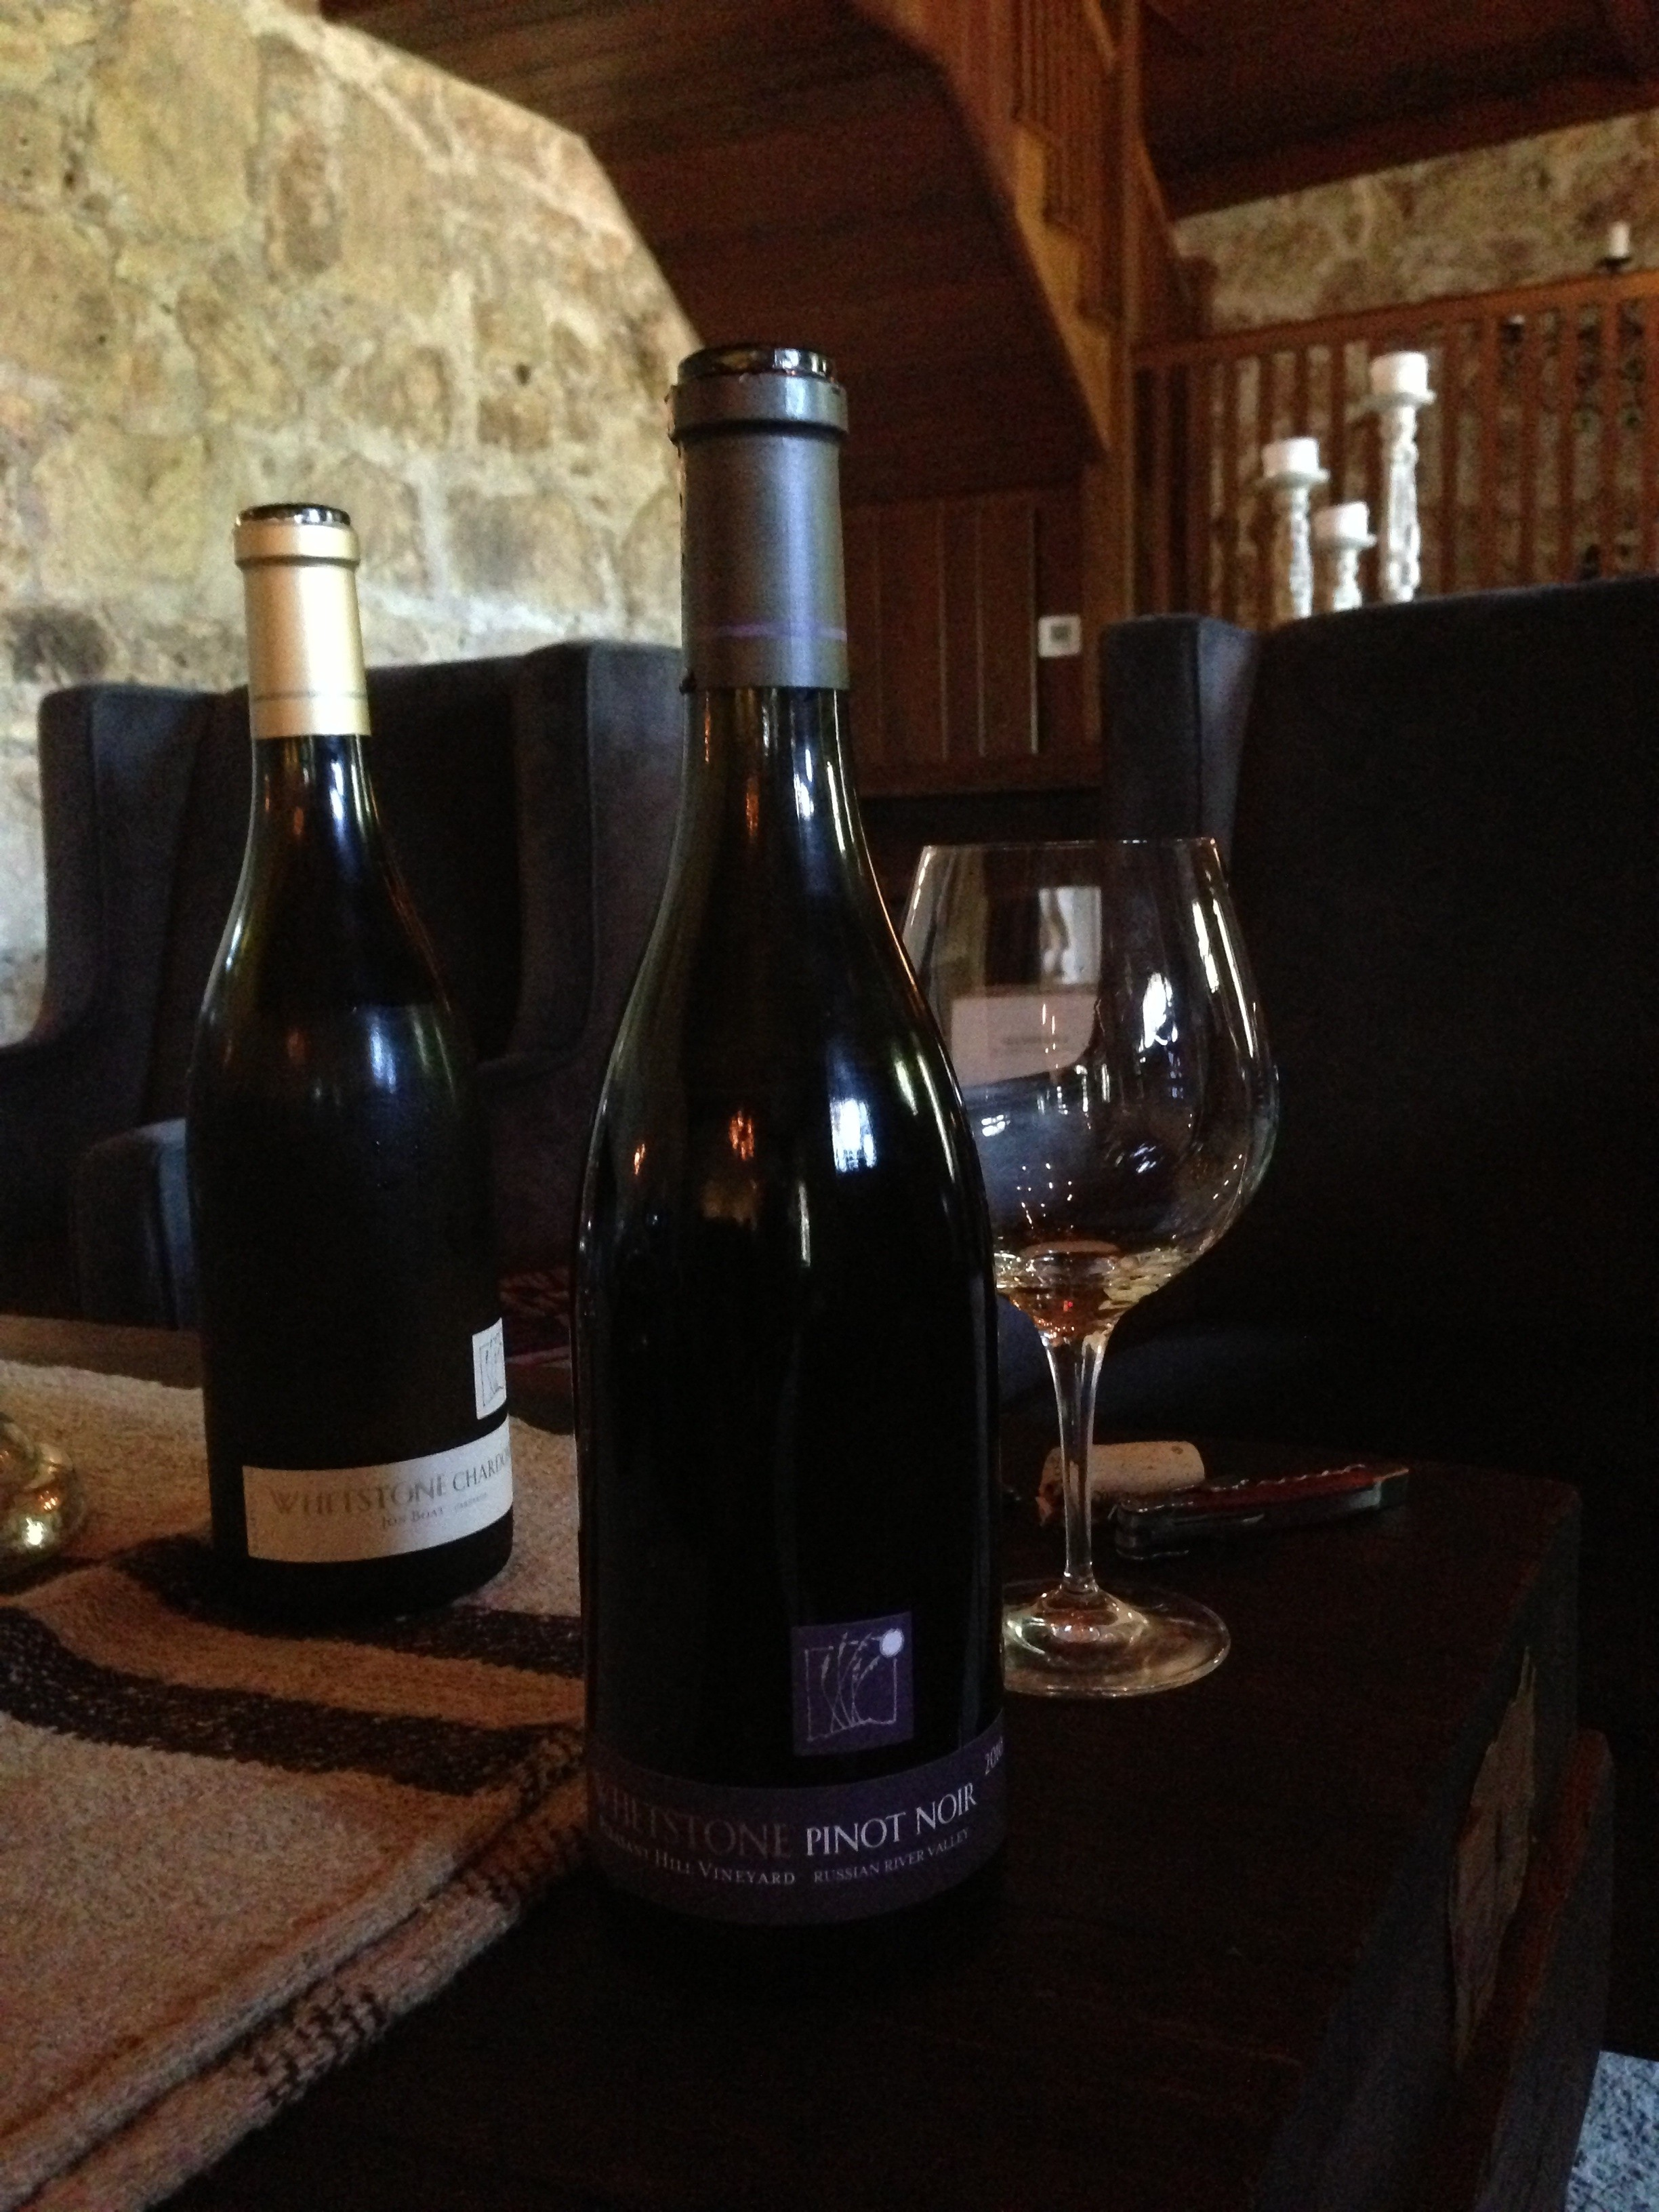 Sipping Pinot Noir at Whetstone.